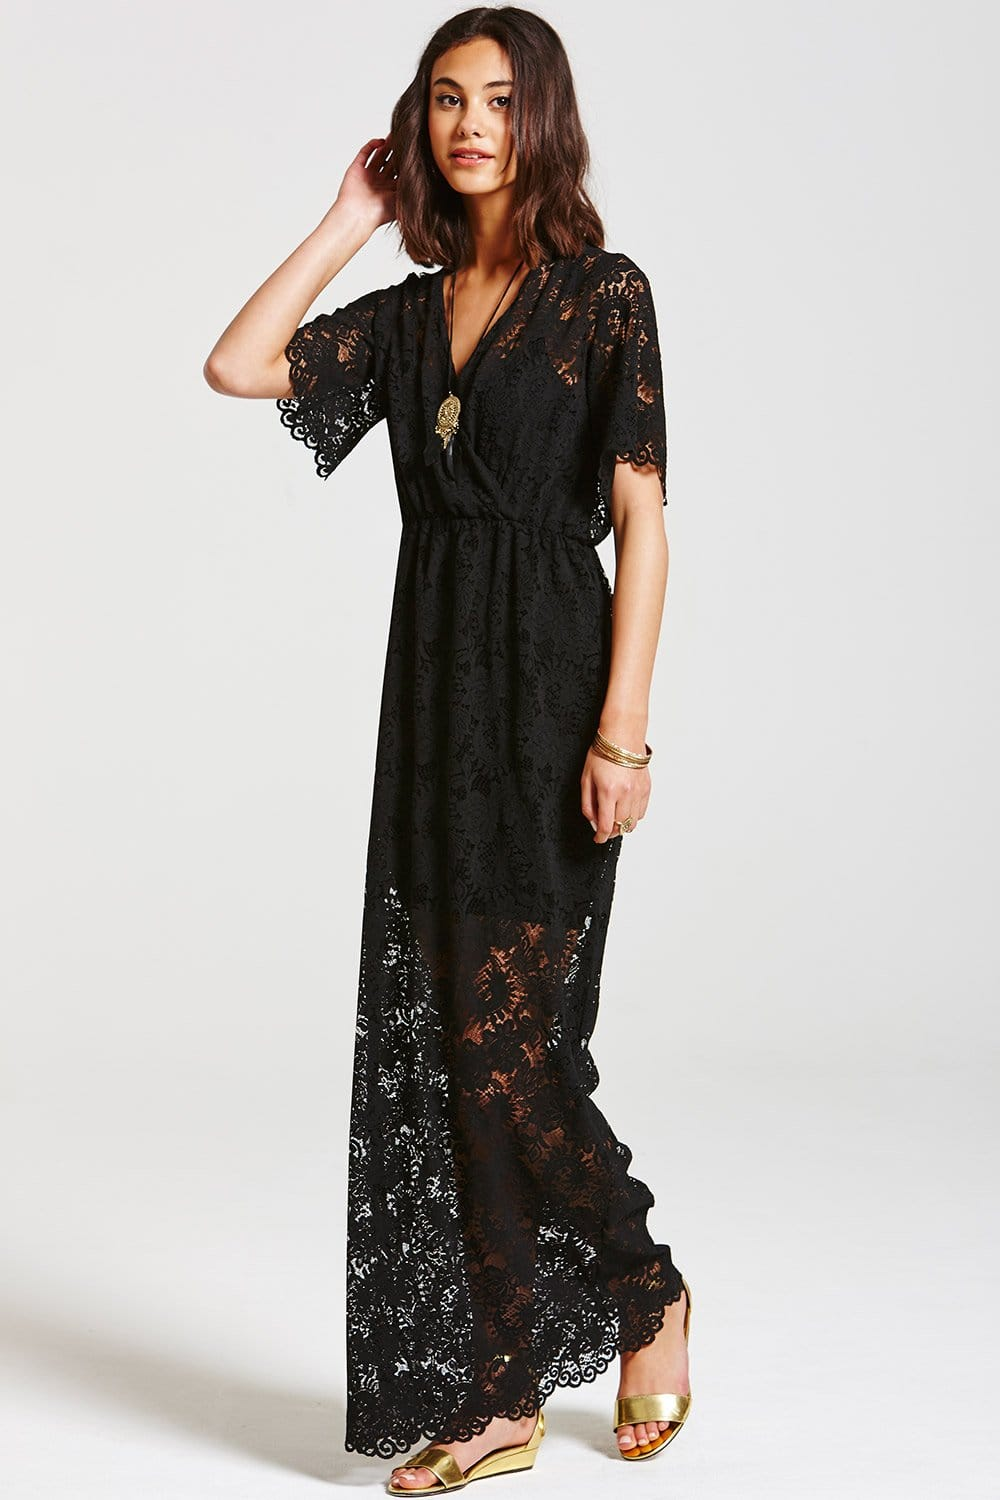 Outlet Girls On Film Black Layered Lace Maxi Dress - Outlet Girls ...